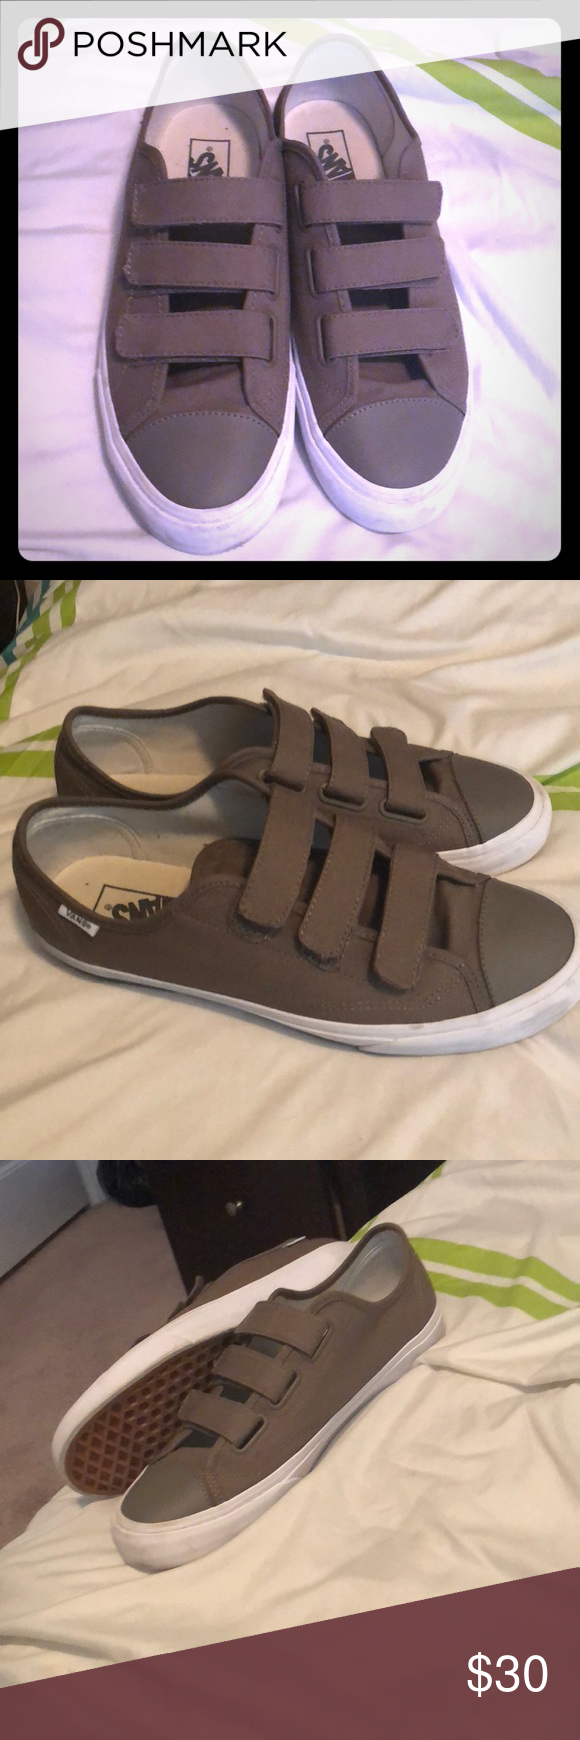 9d5f158e21c Vans Velcro Worn 3 times but still in great shape and ready for a new home!  Vans Shoes Sneakers